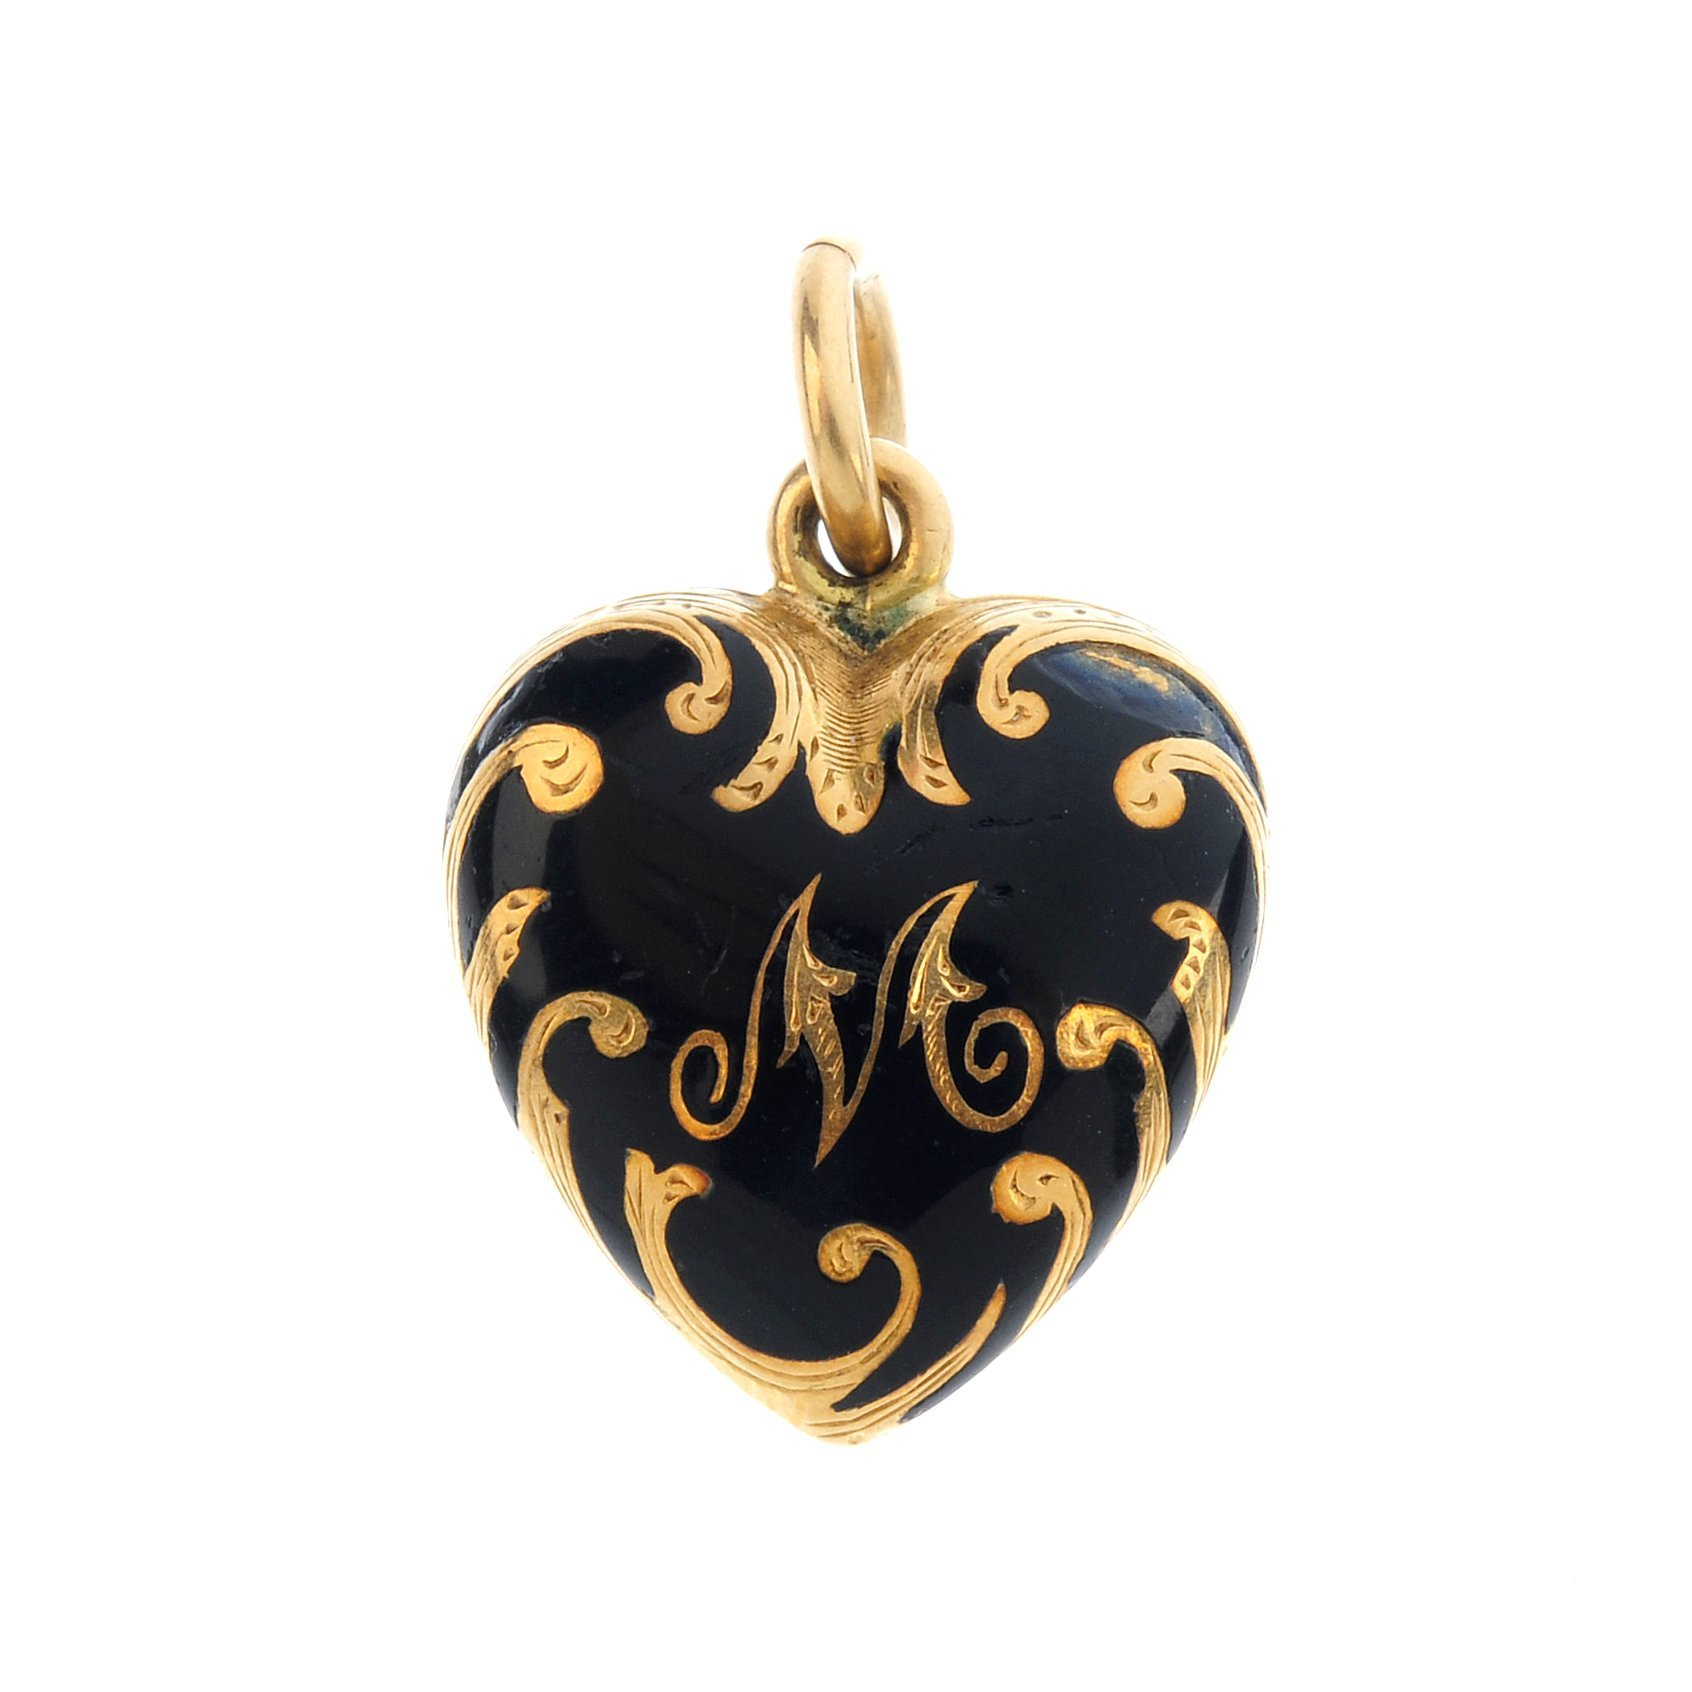 "<a href=""https://www.fellows.co.uk/2104-lot-376-A-mid-Victorian-gold-enamel-heart-locket?utm_source=Ageless%20Heirlooms&utm_medium=blog&utm_campaign=Ageless%20Heirlooms%20Vintage&utm_content=Blog%20and%20social"">LOT 376</a>"